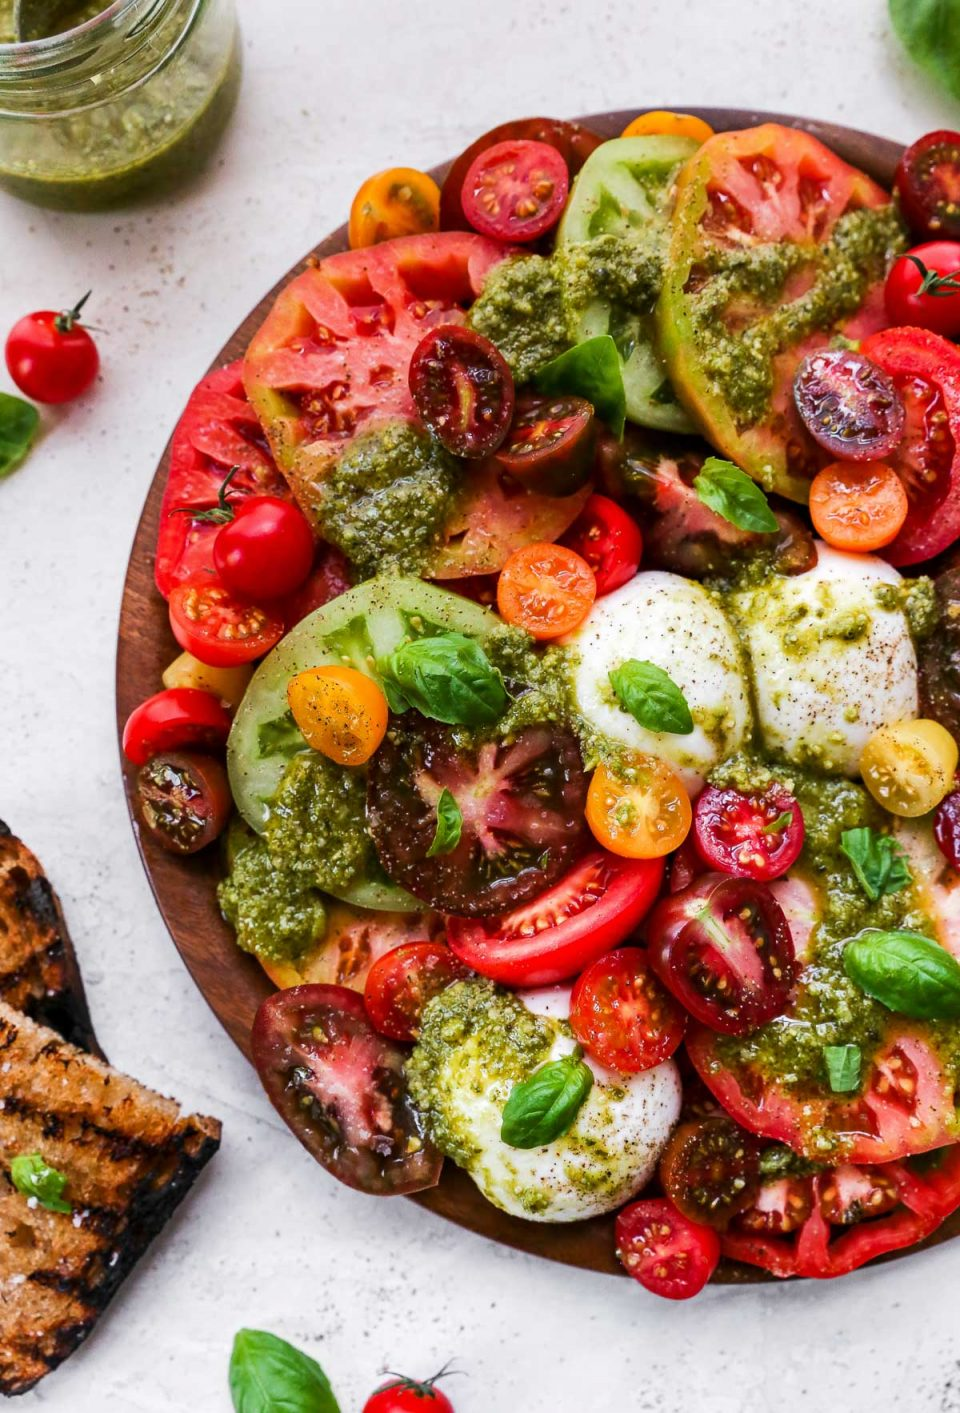 Heirloom tomato burrata salad arranged on a large wooden serving board, topped with vibrant green fresh pesto sauce. The board is surrounded by a few slices of grilled bread & a jar of basil pesto sauce.